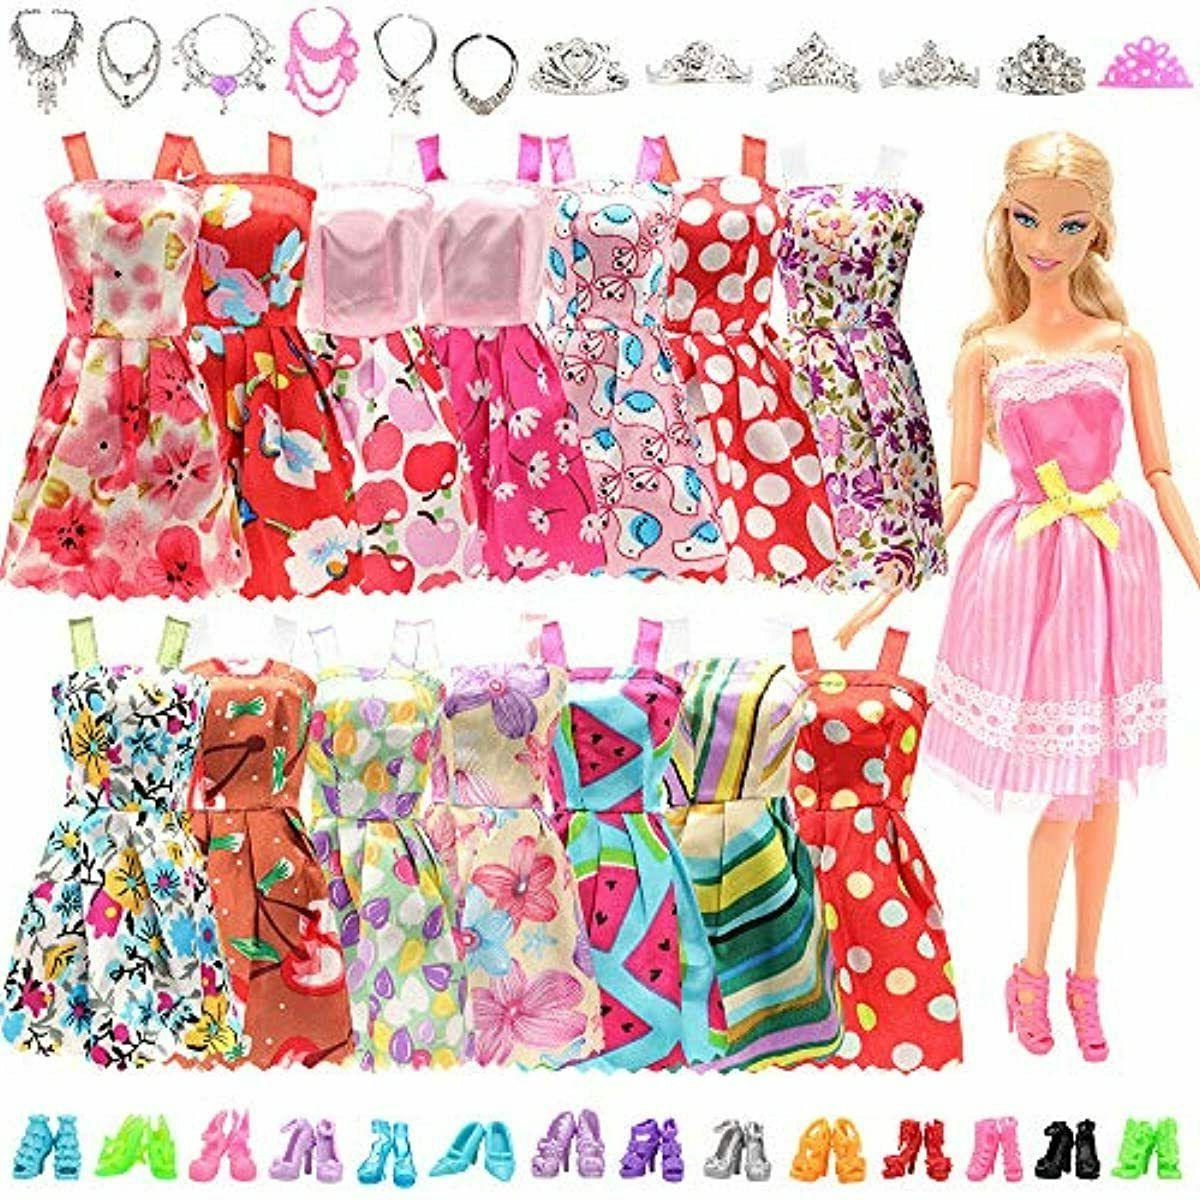 BARWA Doll Clothes 10 pcs Party 22 pcs Shoes,